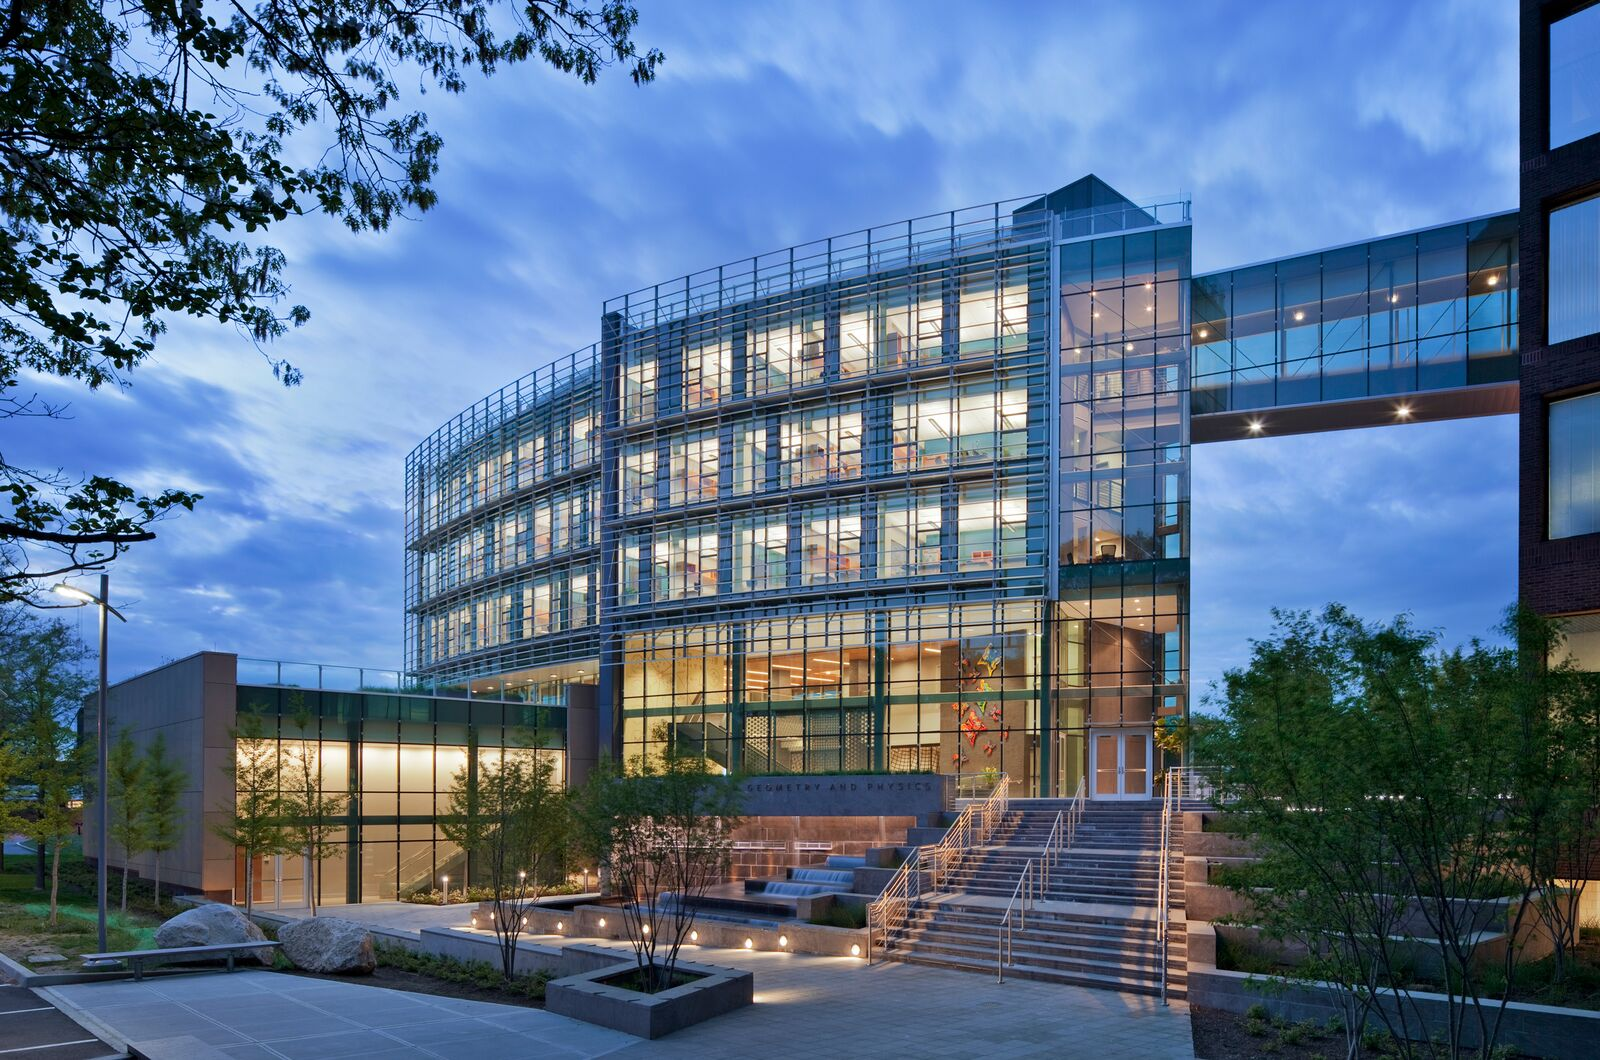 Excellent Value - VS1 achieves a minimization of metal in the facade solution and uses standardized components, resulting in cost effective solutions competitive with four-side flush conventional curtain walls. VS1 also allows for future accessorizing of installed walls to improve performance and make use of new technologies.Pictured: Simons Center at Stony Brook University